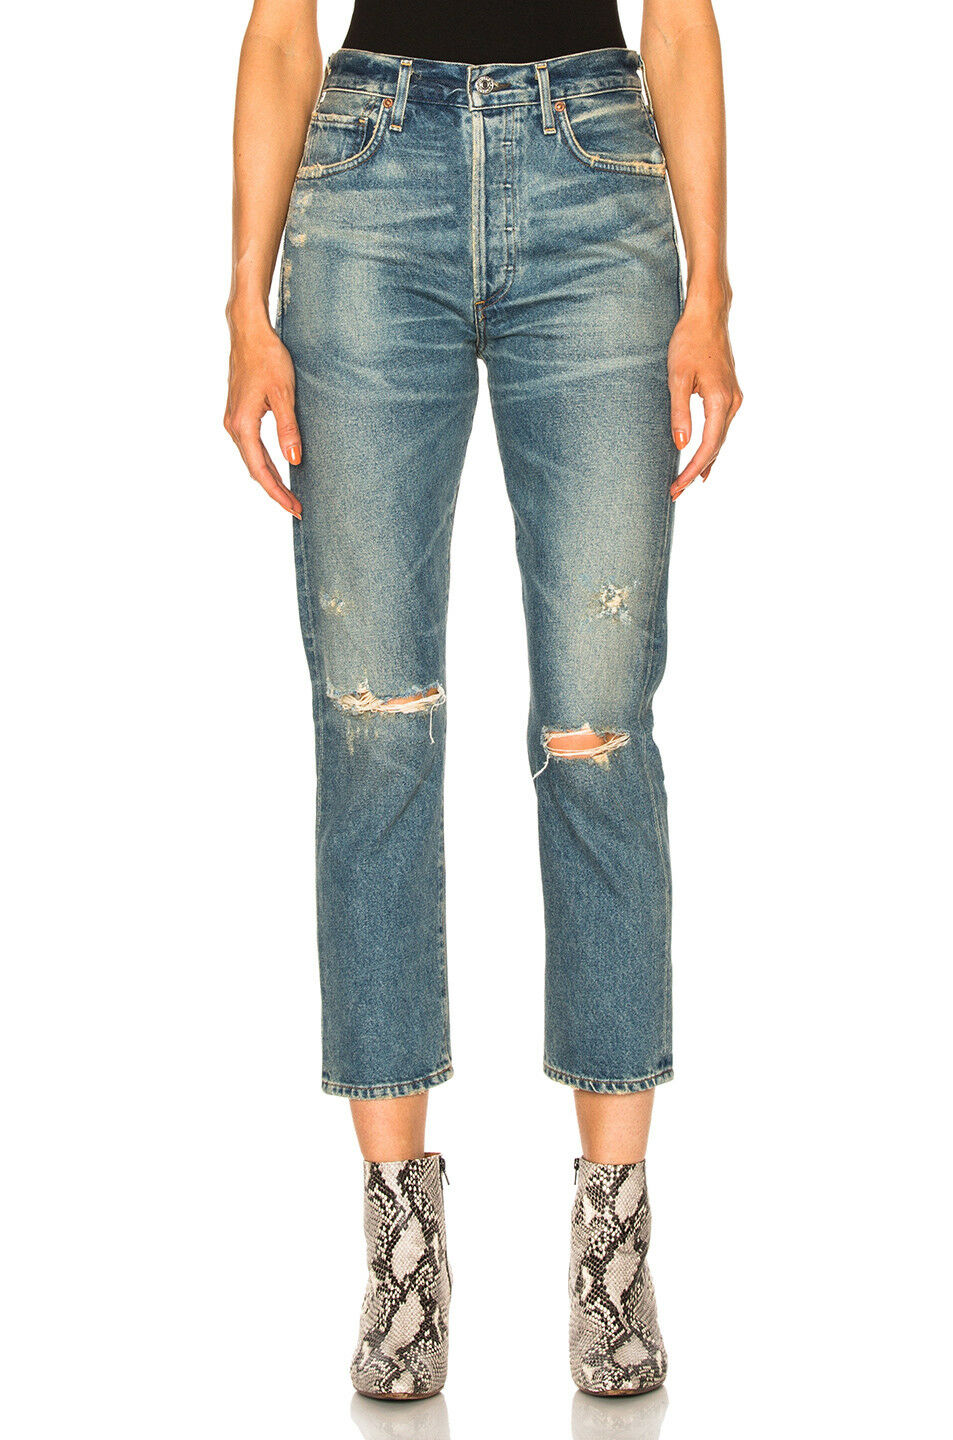 NWT CITIZENS OF HUMANITY DREE CAMEO CROP HIGH-RISE SLIM STRAIGHT JEANS 31